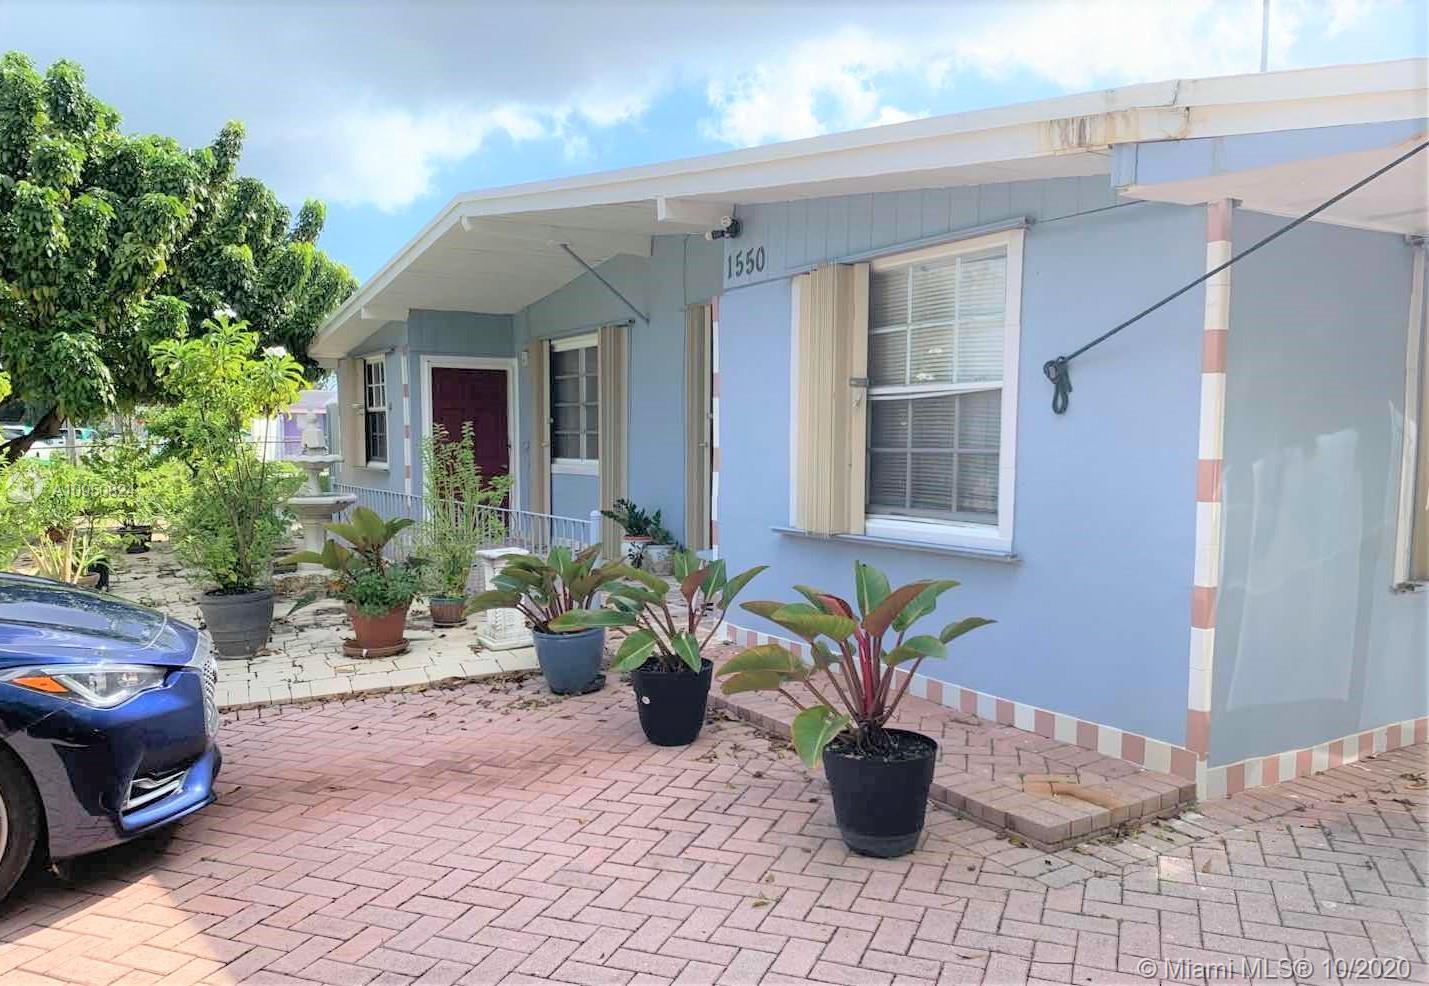 3 Bedroom 1 bath one story home in Pompano Beach. Walking distance to school.